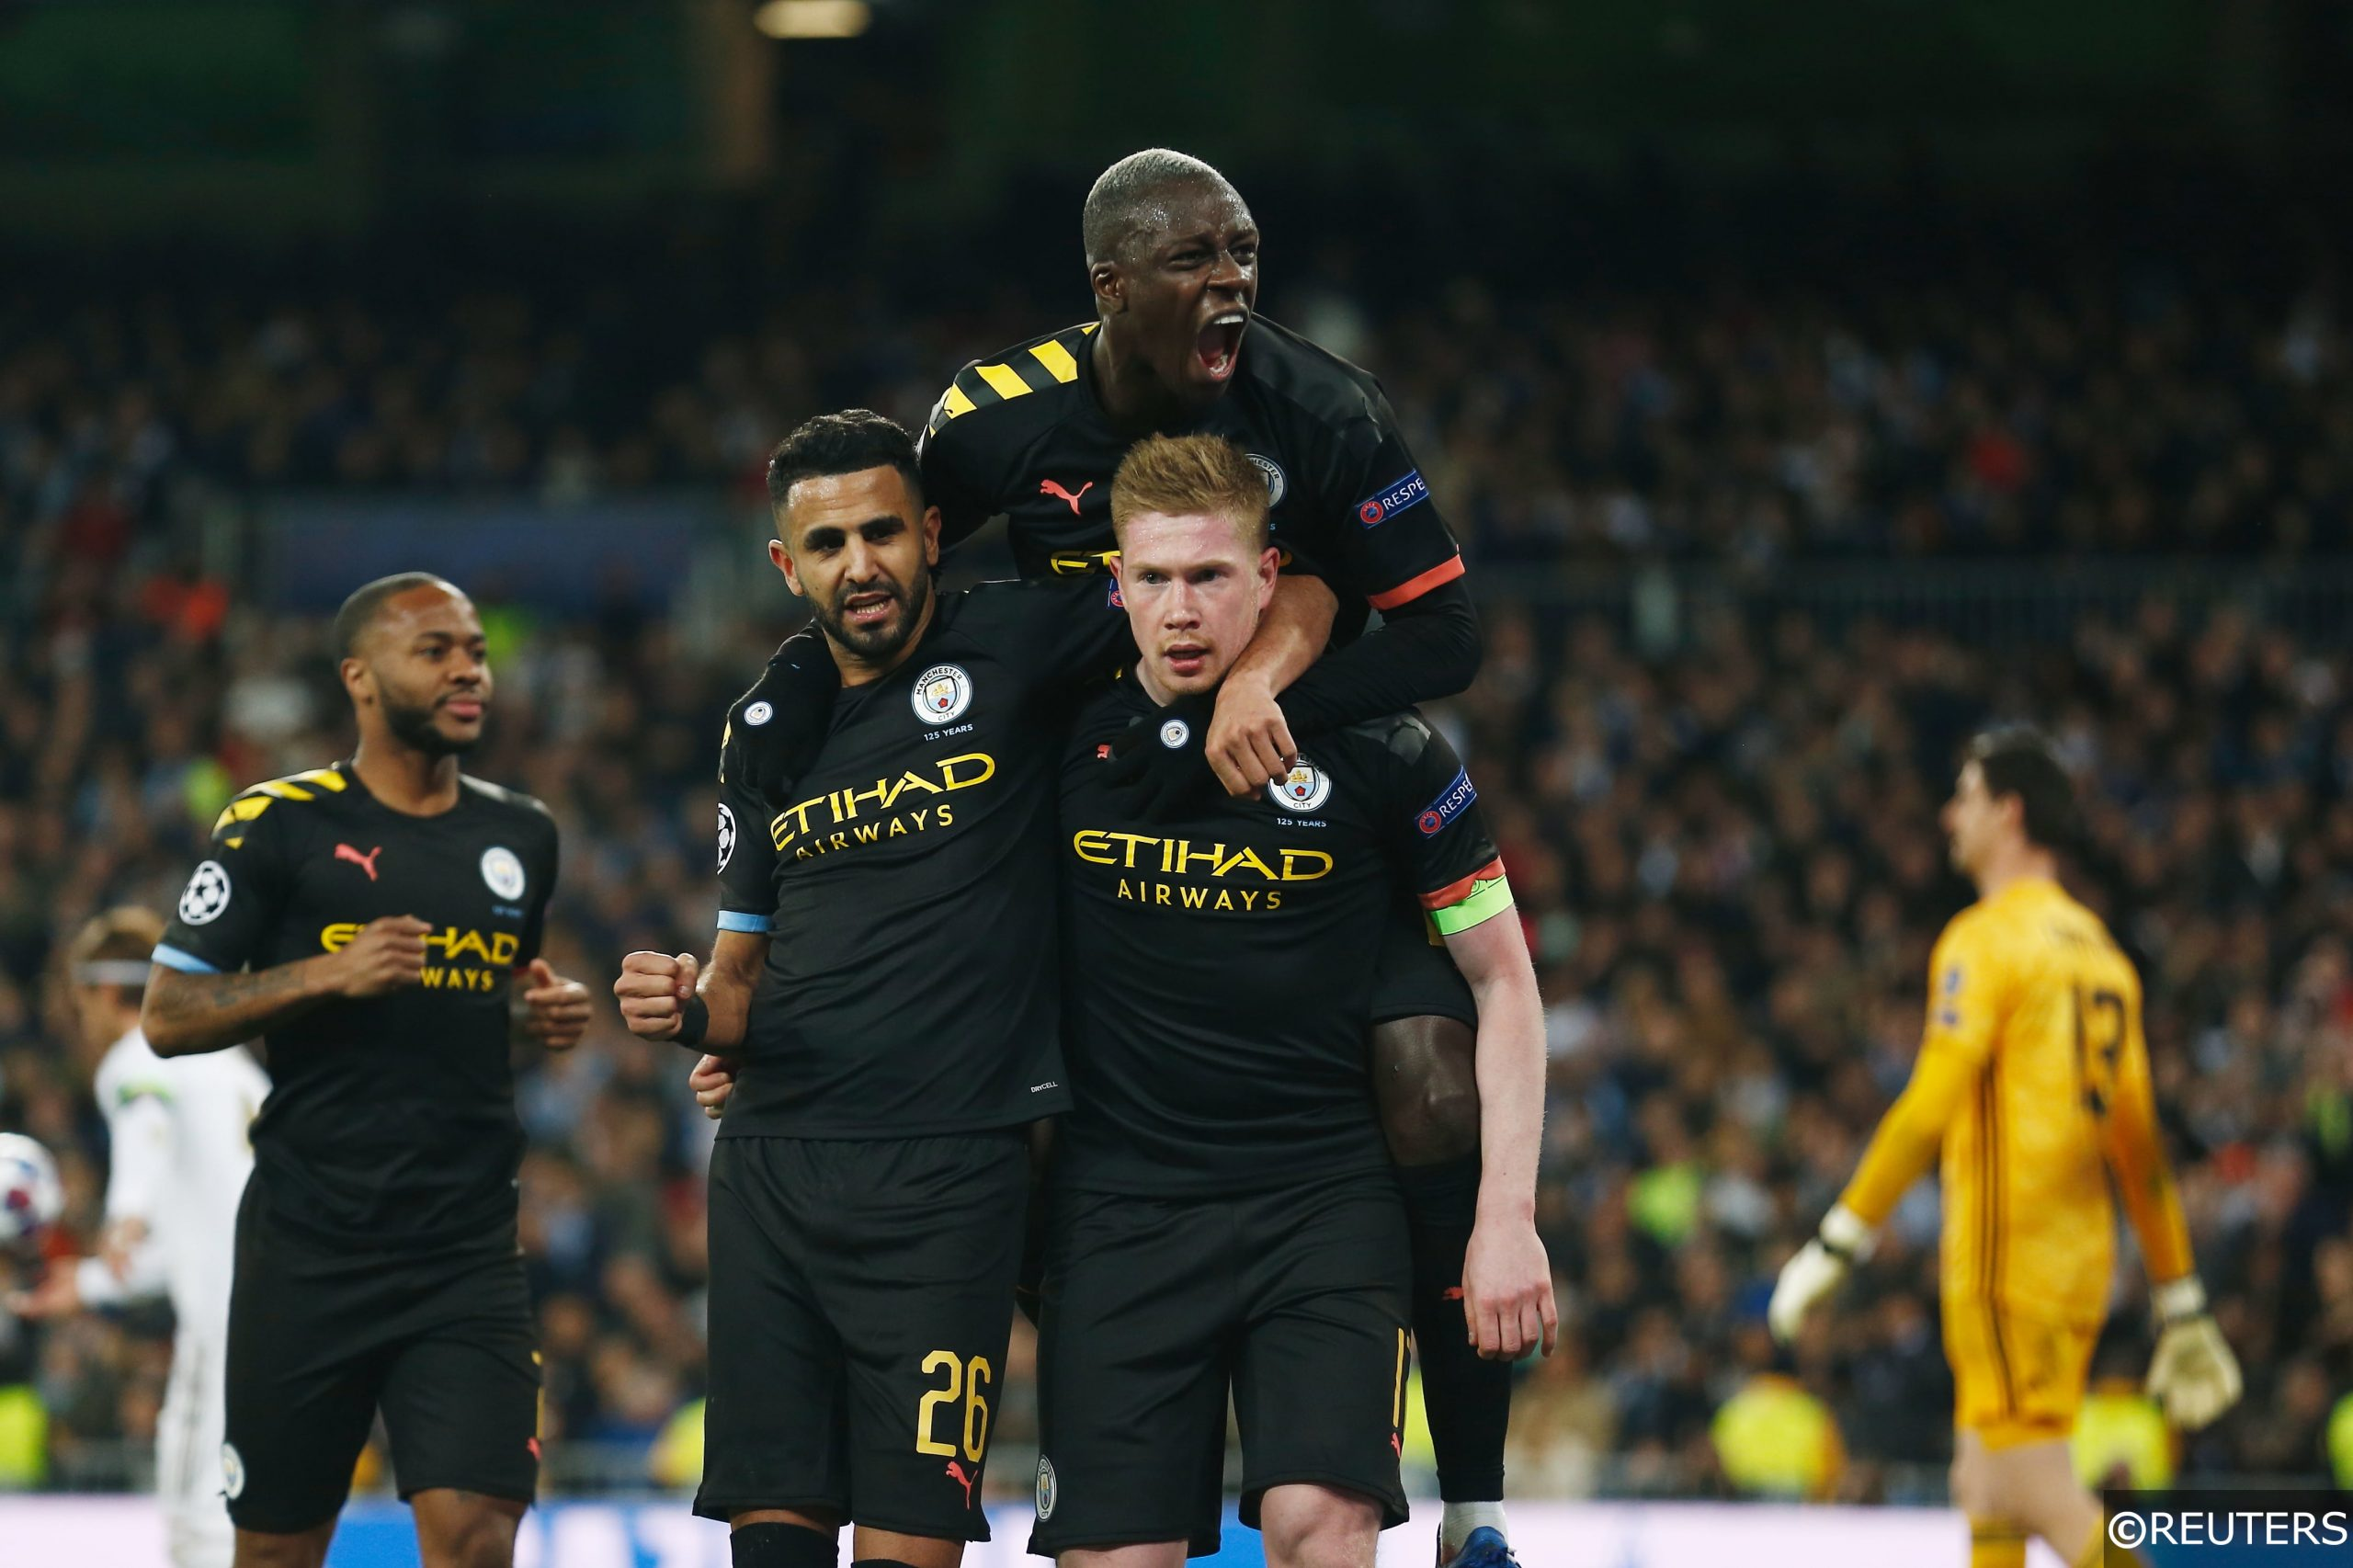 Manchester City players celebrate a goal in the Champions League